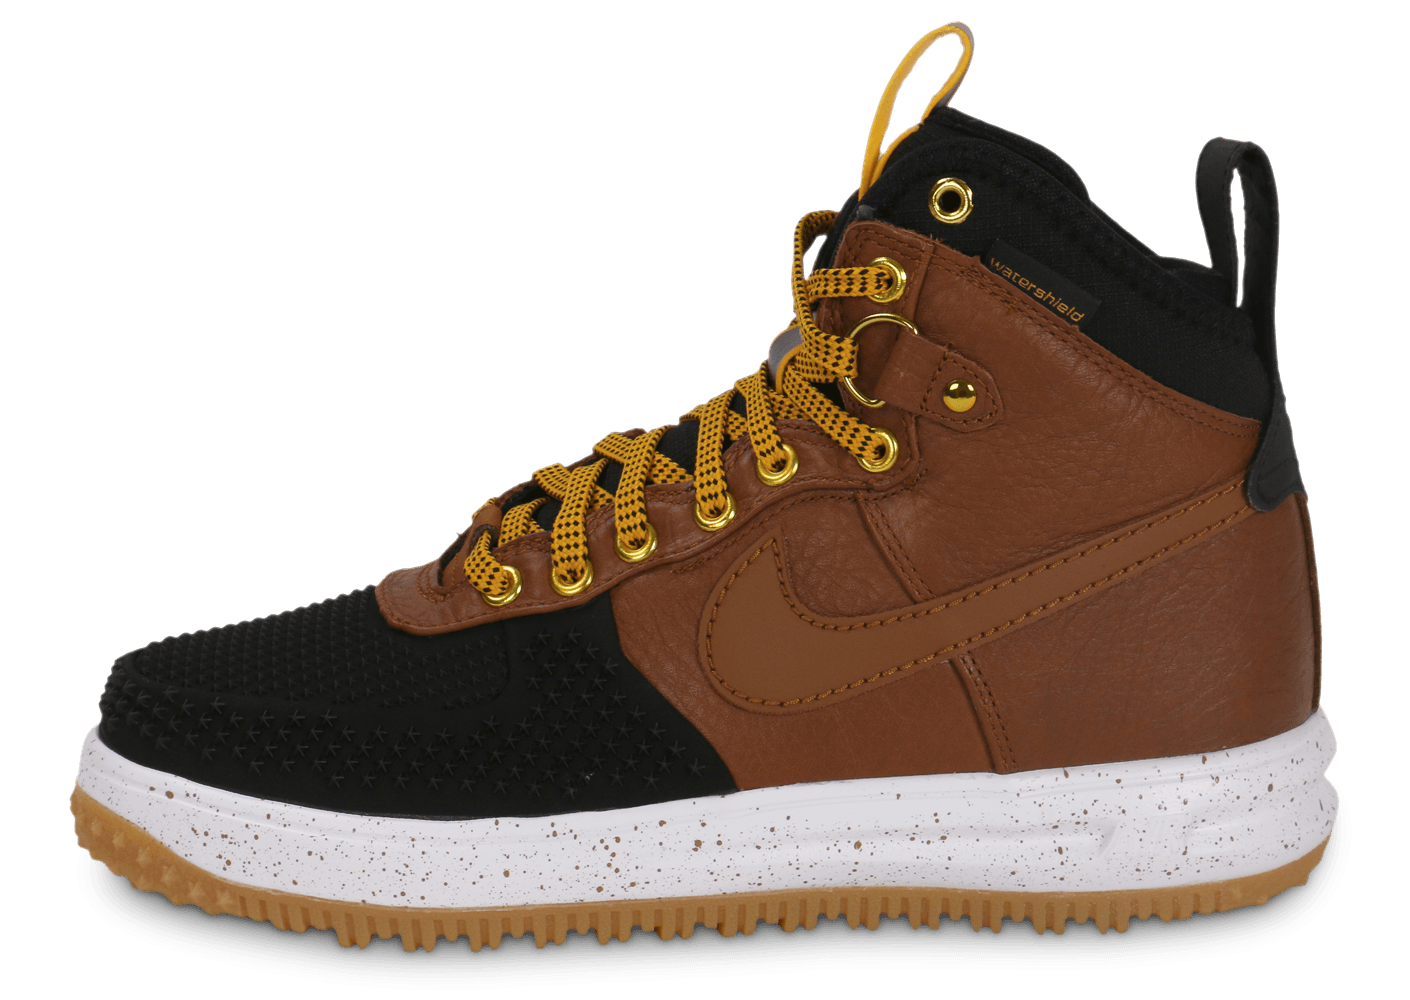 nike air force 1 duckboot chaussures beige. Black Bedroom Furniture Sets. Home Design Ideas